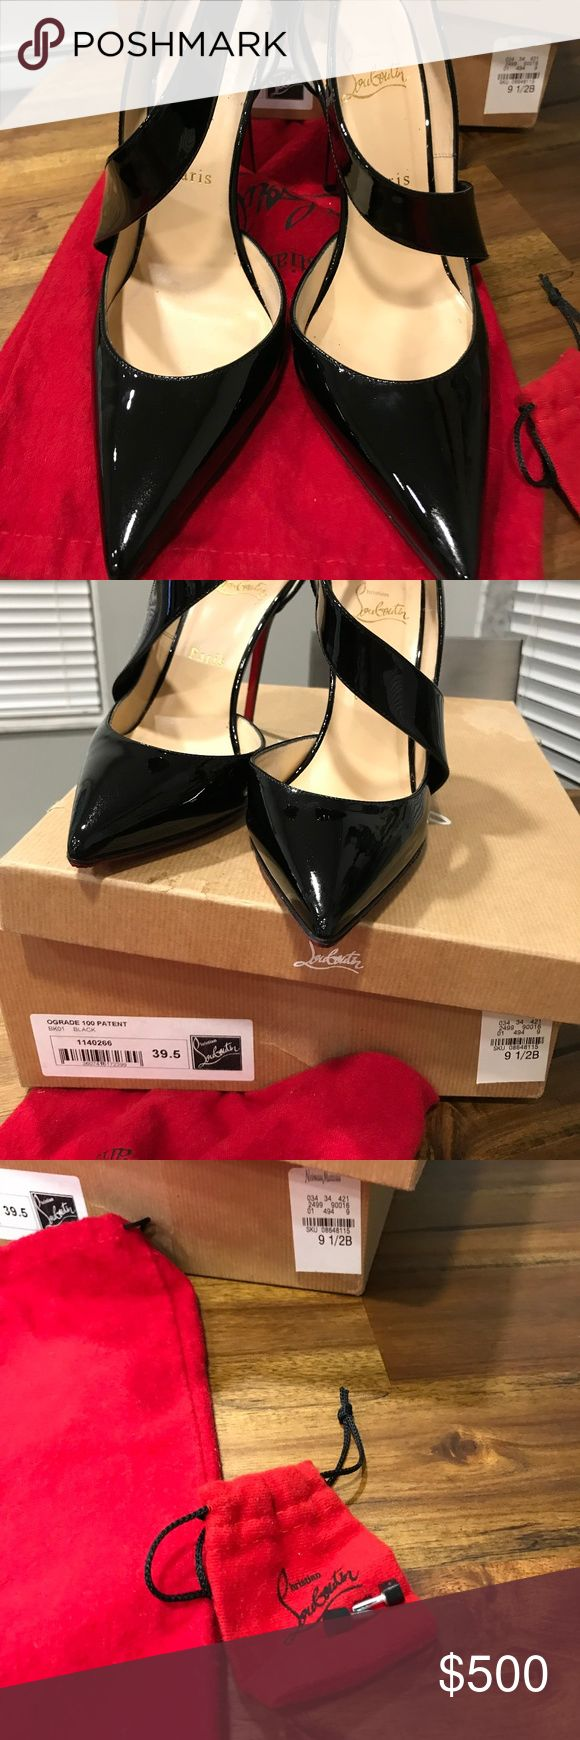 Christian Louboutin Ograde Black Patent Leather Beautiful! 100% authentic! Looks amazing on! Worn maybe twice!   Gorgeous in like perfect condition! Gorgeous 100% authentic shoes, comes in box and with one dust bag and heel caps! Very very beautiful and almost perfect condition. One small knick on the heel of one of the shoes, see pics. COMPLIMENTARY $80 sole protector!! Christian Louboutin Shoes Heels